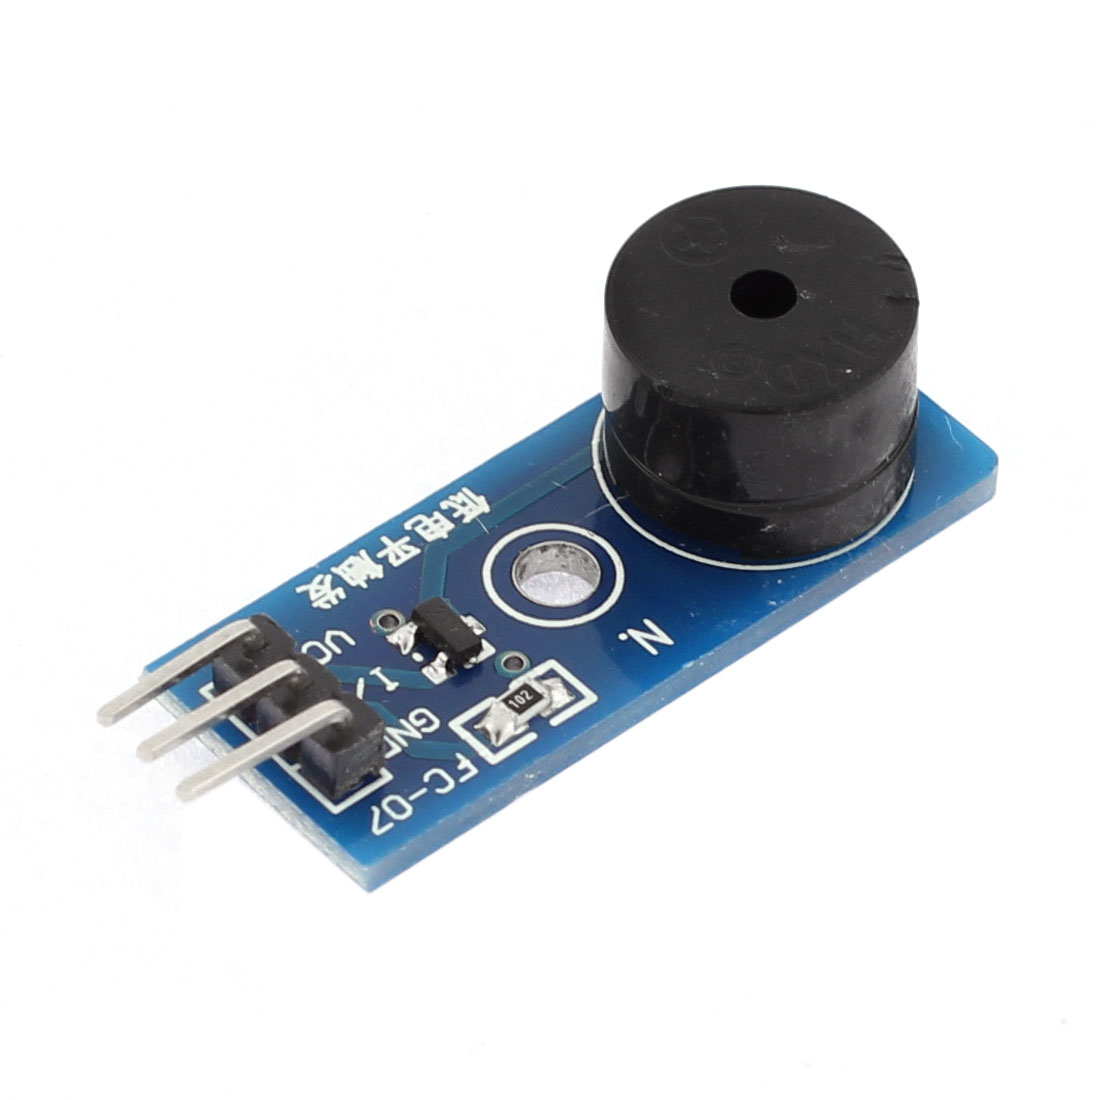 DC 3.3-5V Low Level Trigger Buzzer Alarm Soundor Sensor Module for MCU AVR